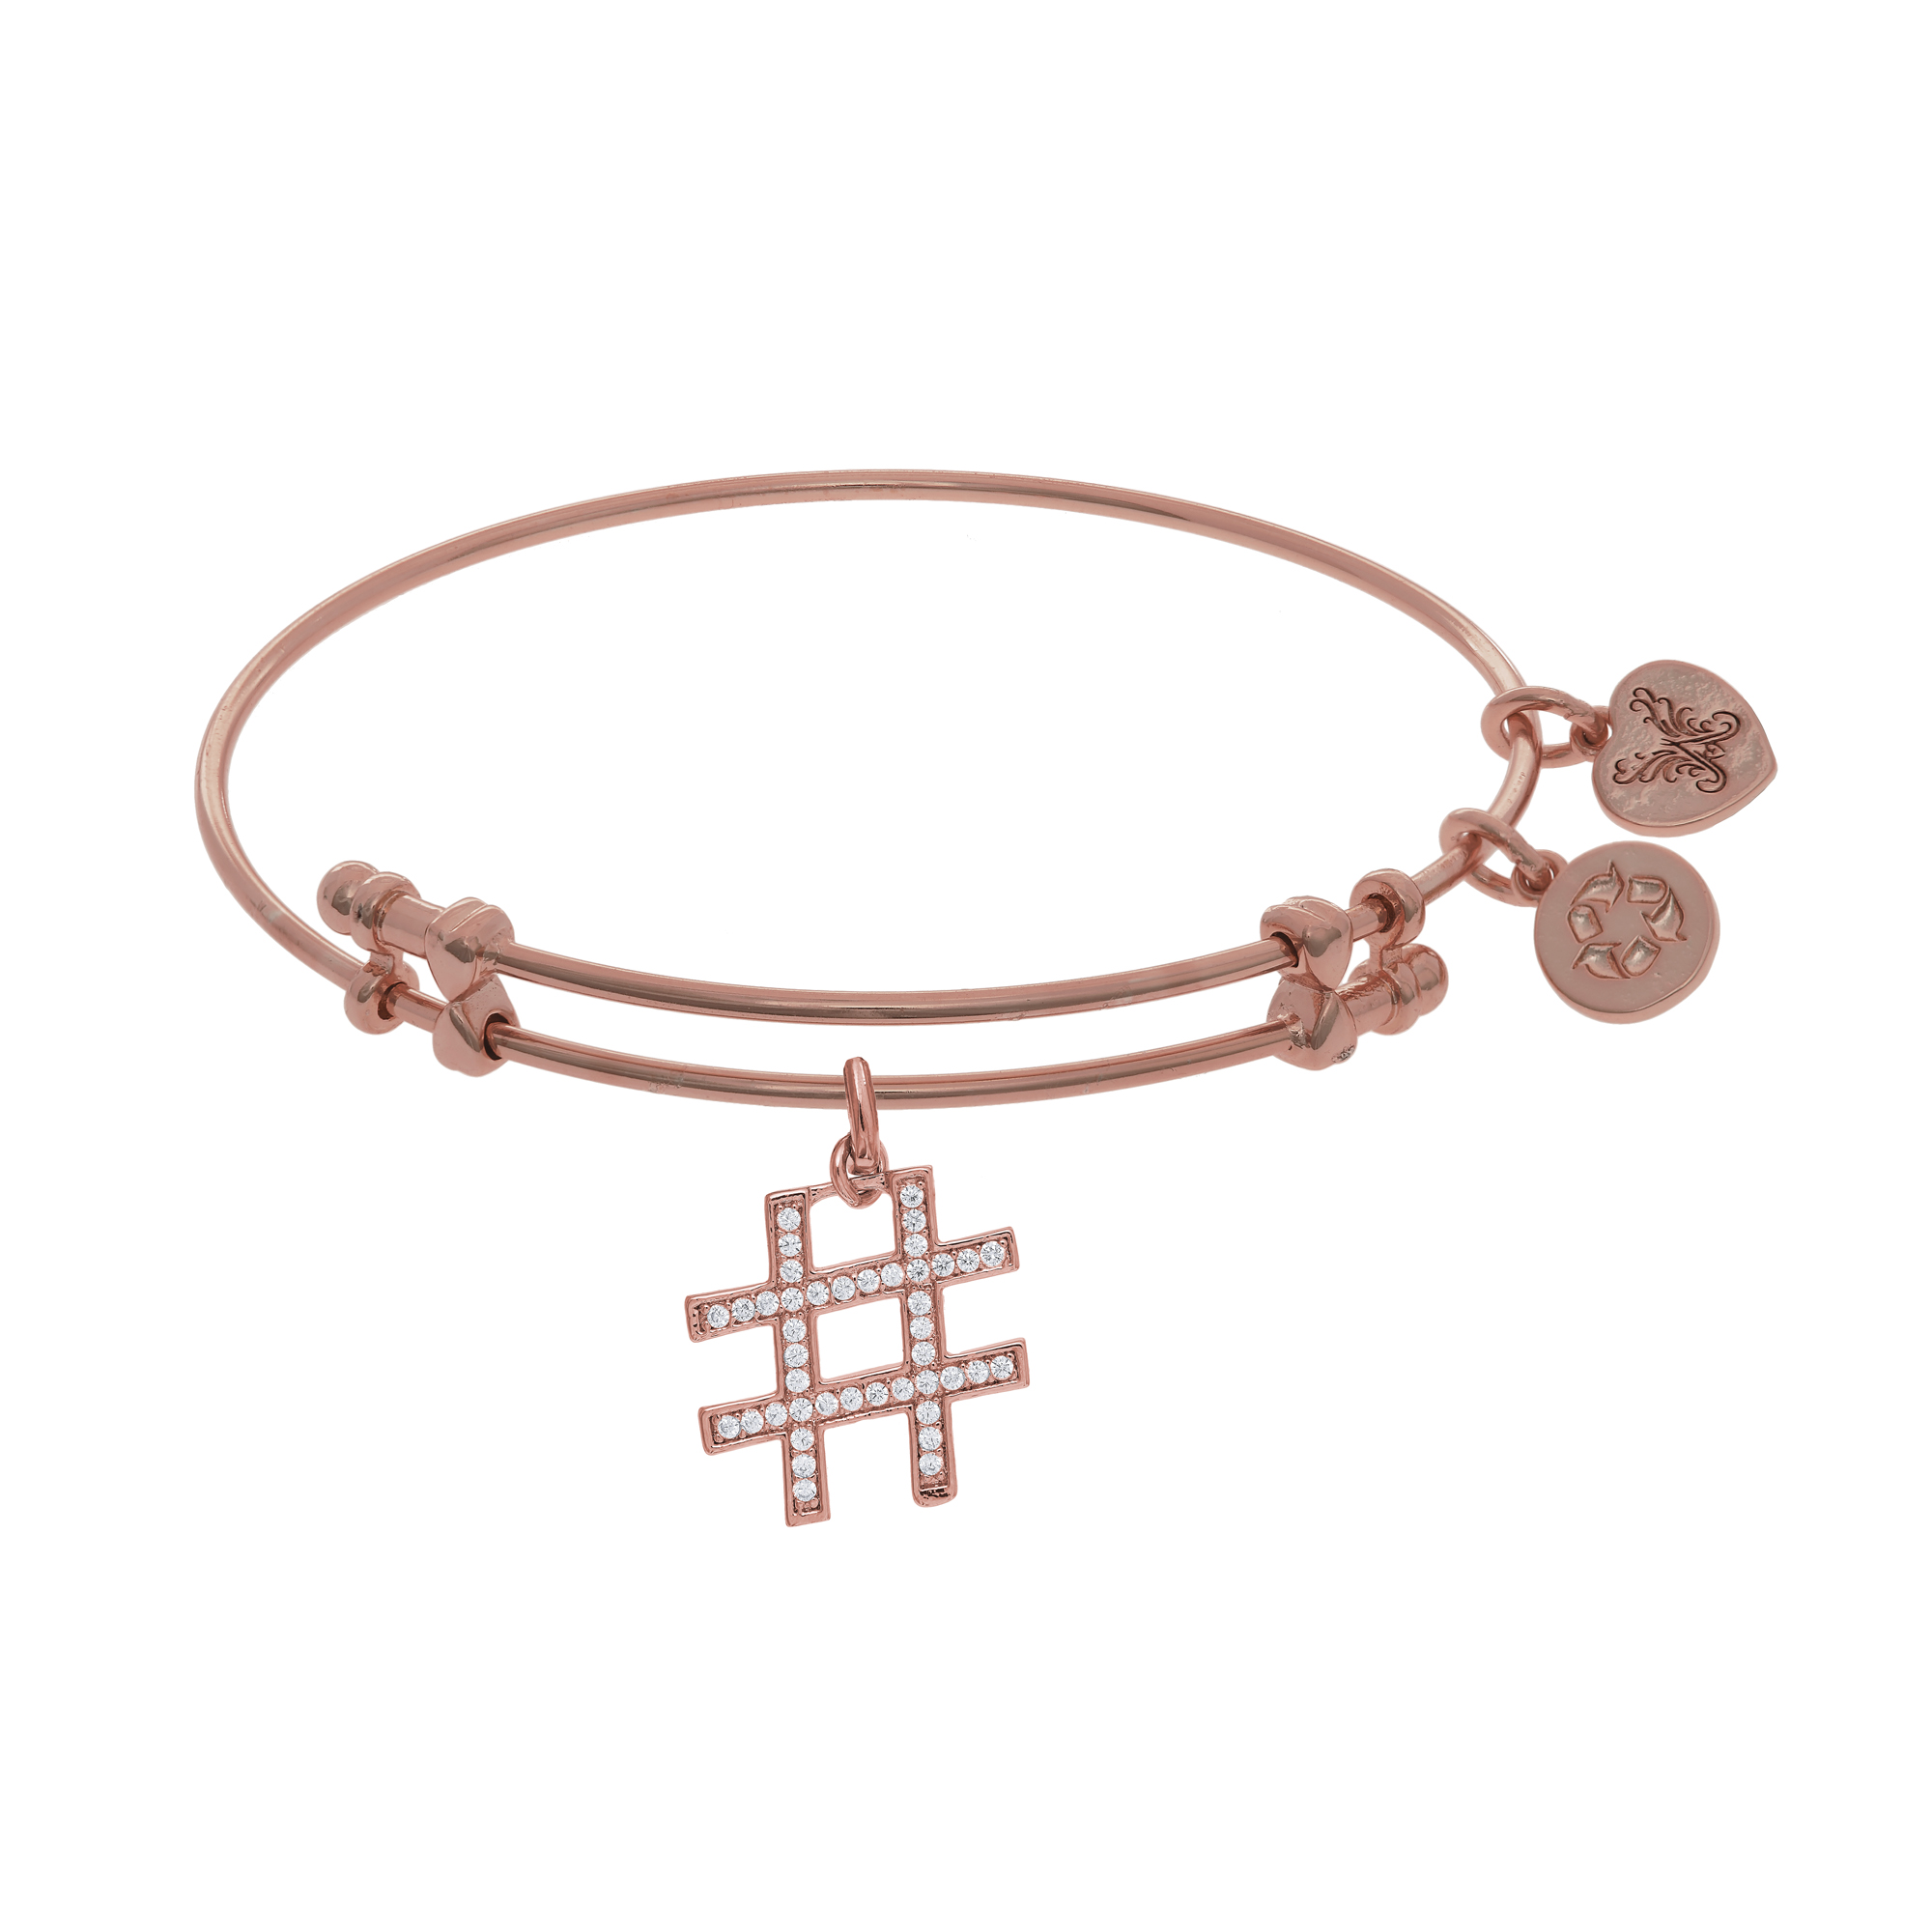 F A Dumont 8 inch Round Double Loop Bangle Bracelet with a Holy Spirit Charm.